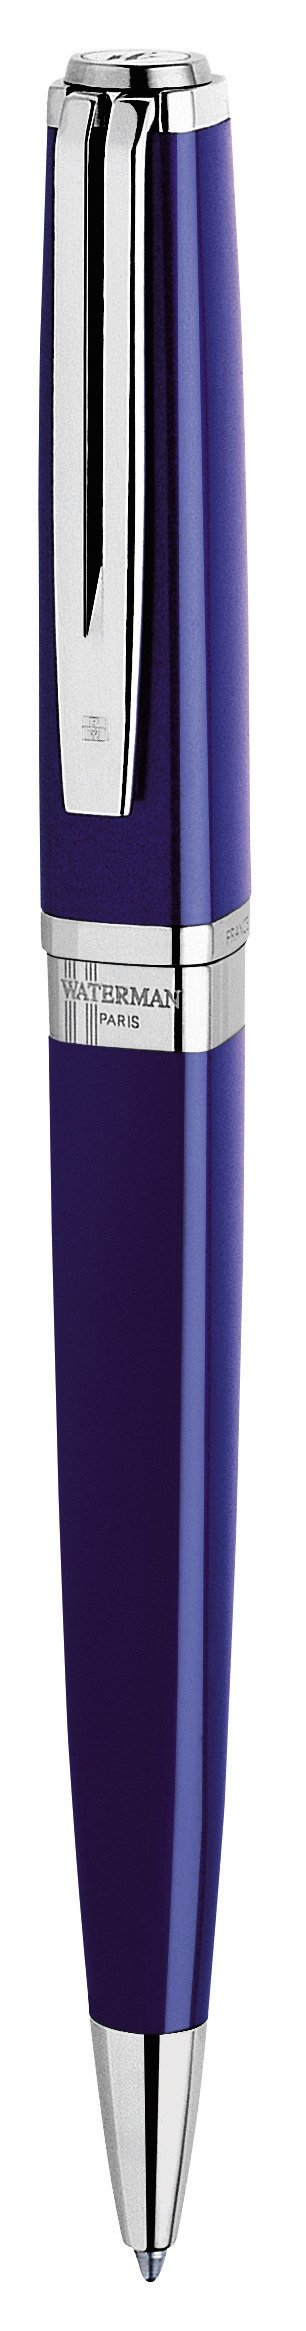 Waterman Exception Ballpoint Pen, Slim Blue with Silver Plated Clip, Medium Point with Blue Ink Cartridge, Gift Box